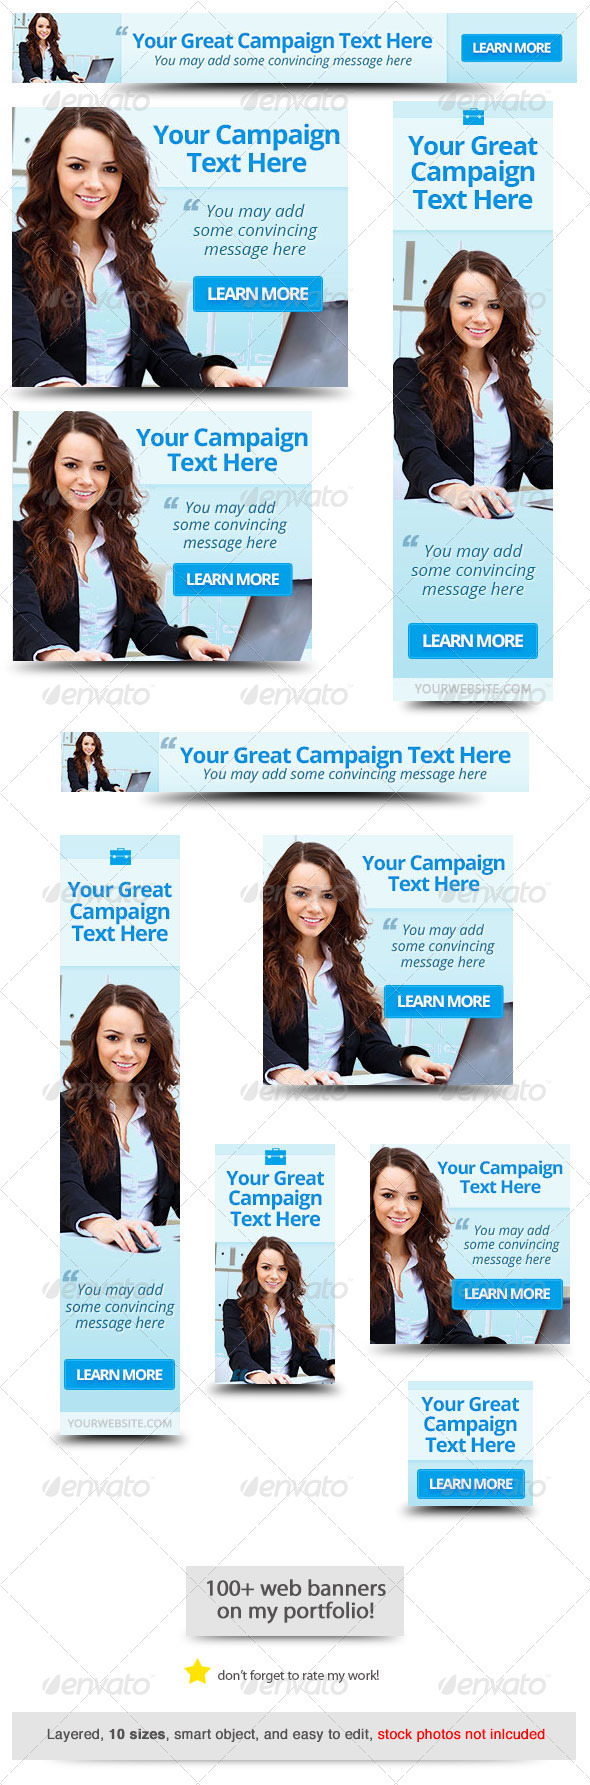 Corporate Web Banner Design Template 48